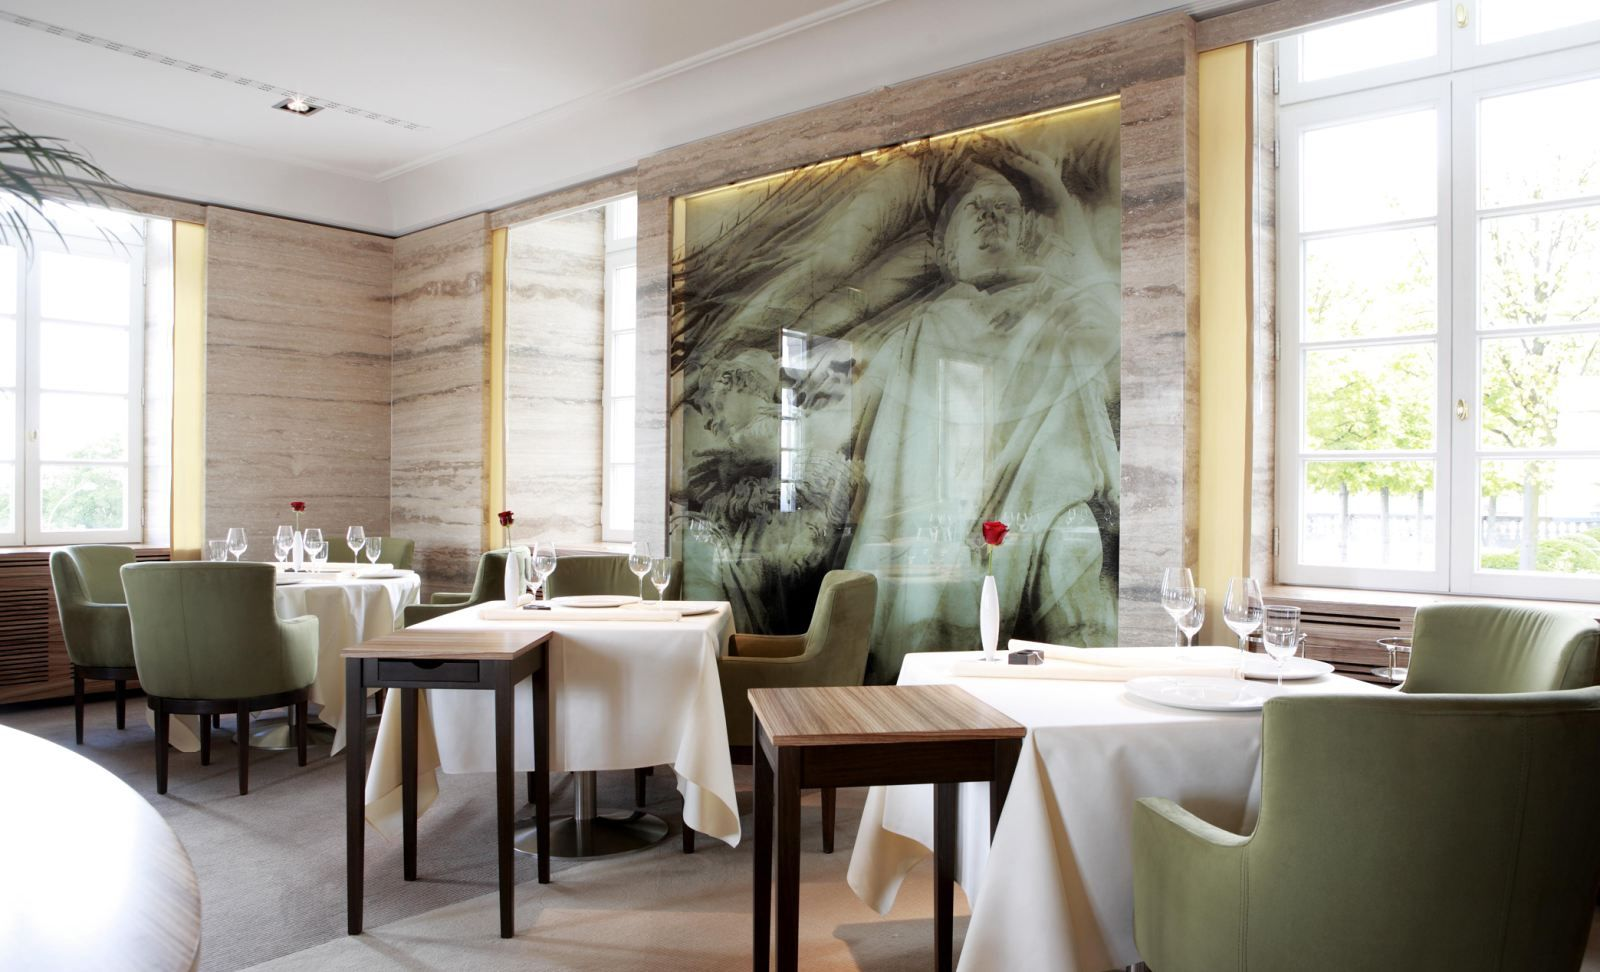 The Vendôme restaurant will truly make you experience the